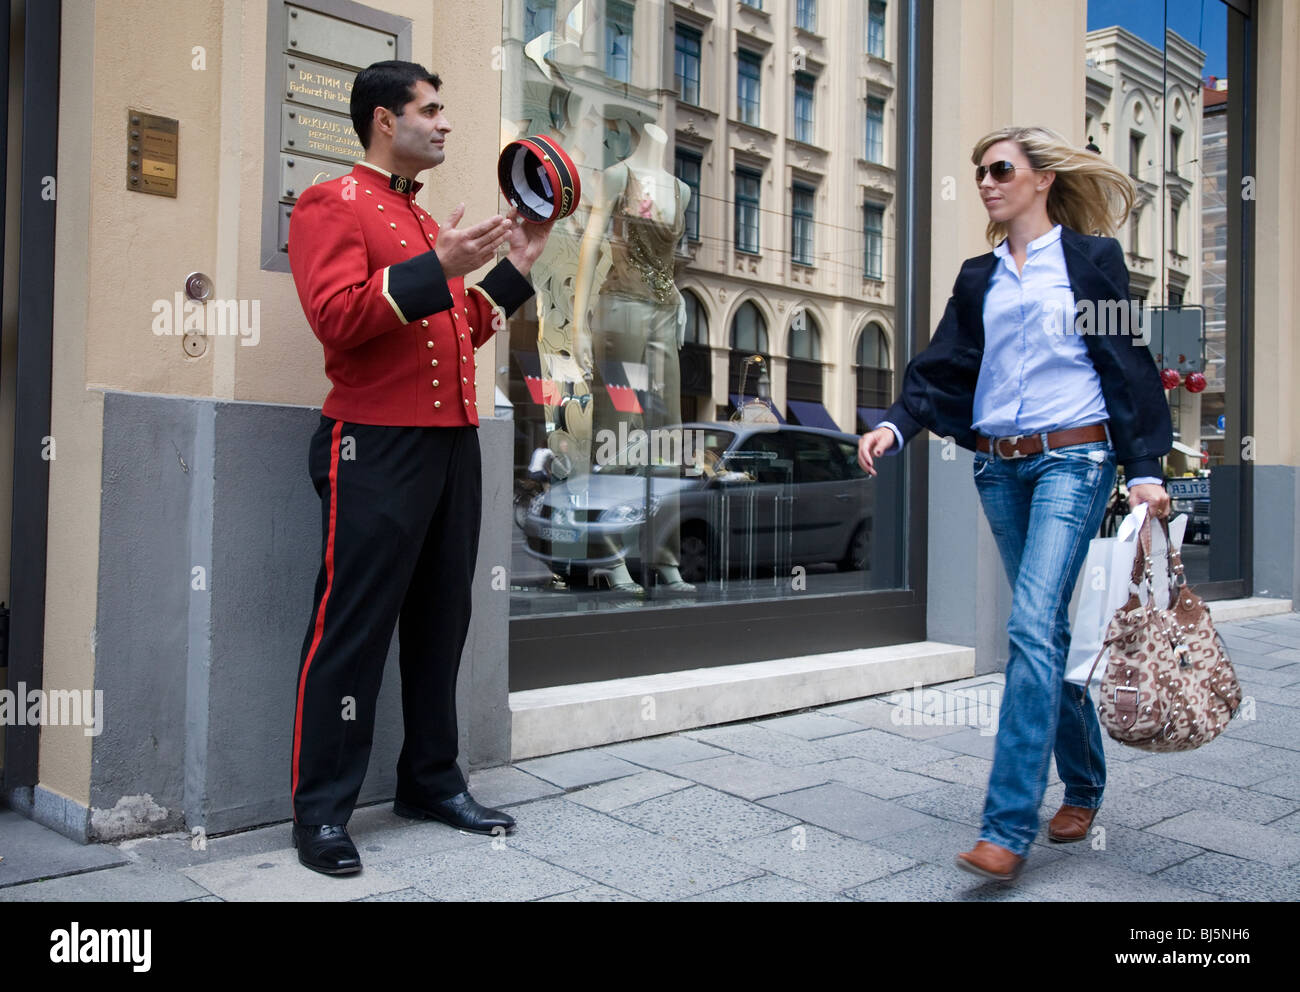 A Turkish bellboy salutes a shopping beautiful young woman in Maximiliastrasse Munich, Germany Stock Photo